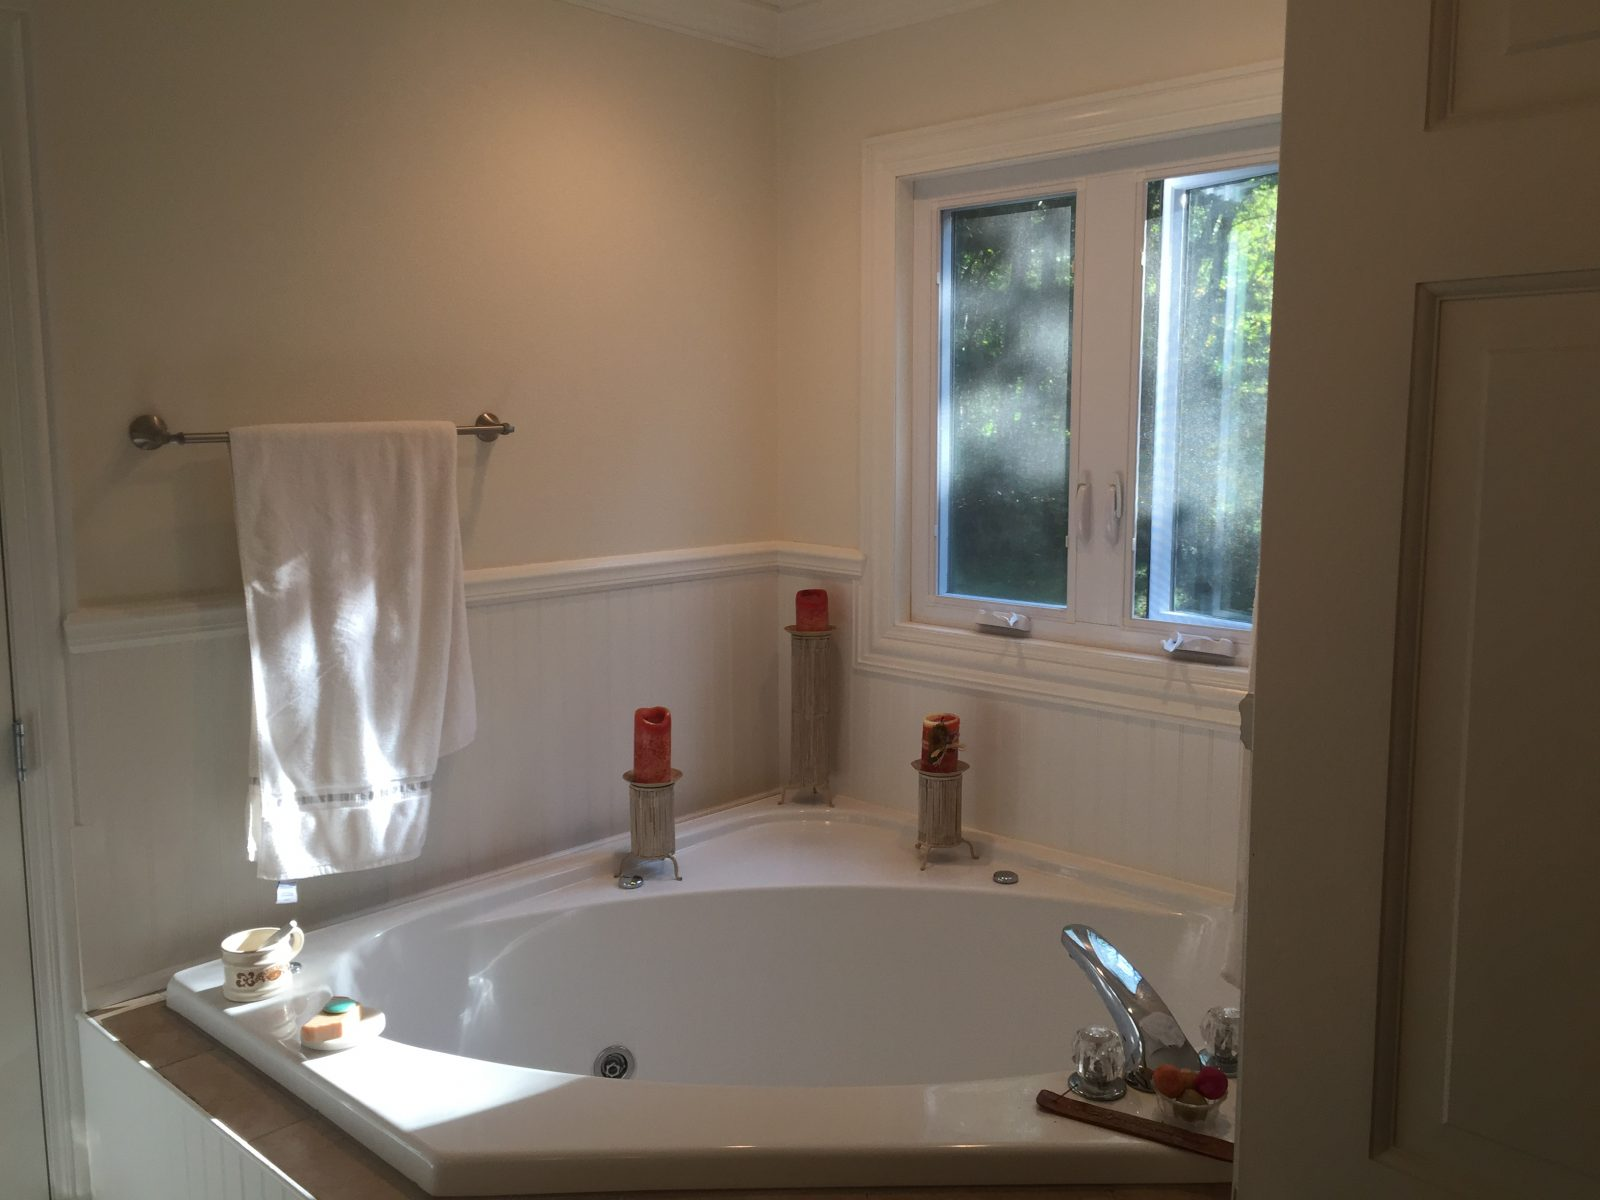 Bathroom Remodel In Madison Or Wausau - Bathroom remodel madison